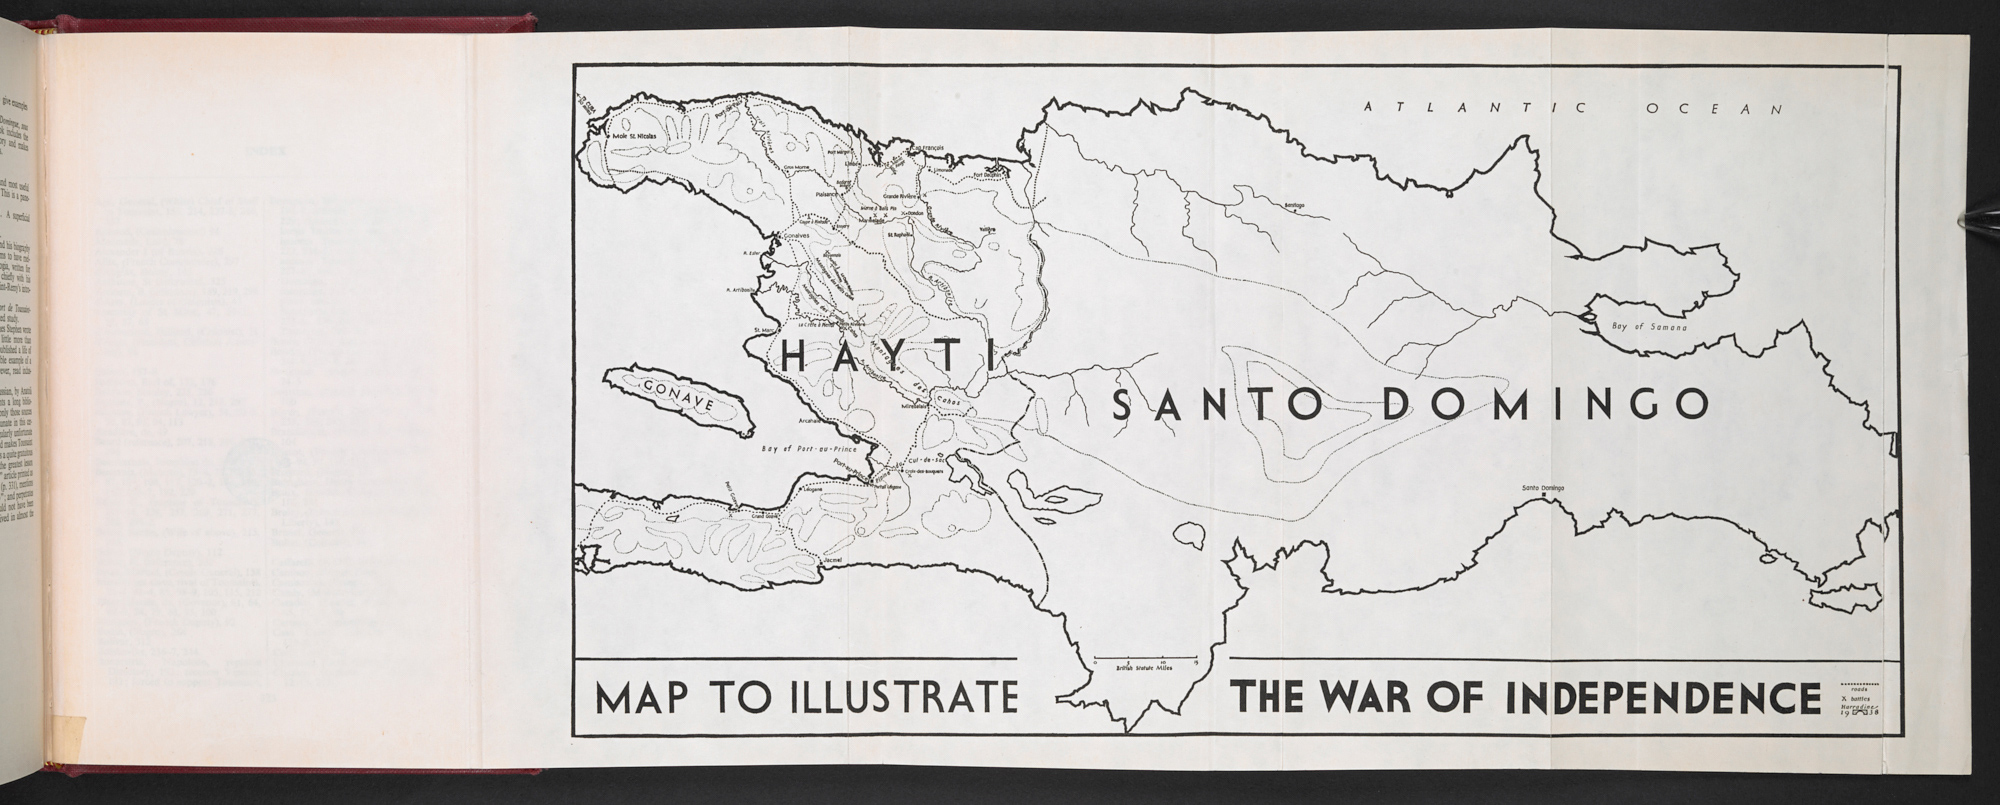 'Map to illustrate the war of independence' from the first edition of C L R James's The Black Jacobins, showing Hayti on the left and Santo Domingo on the right